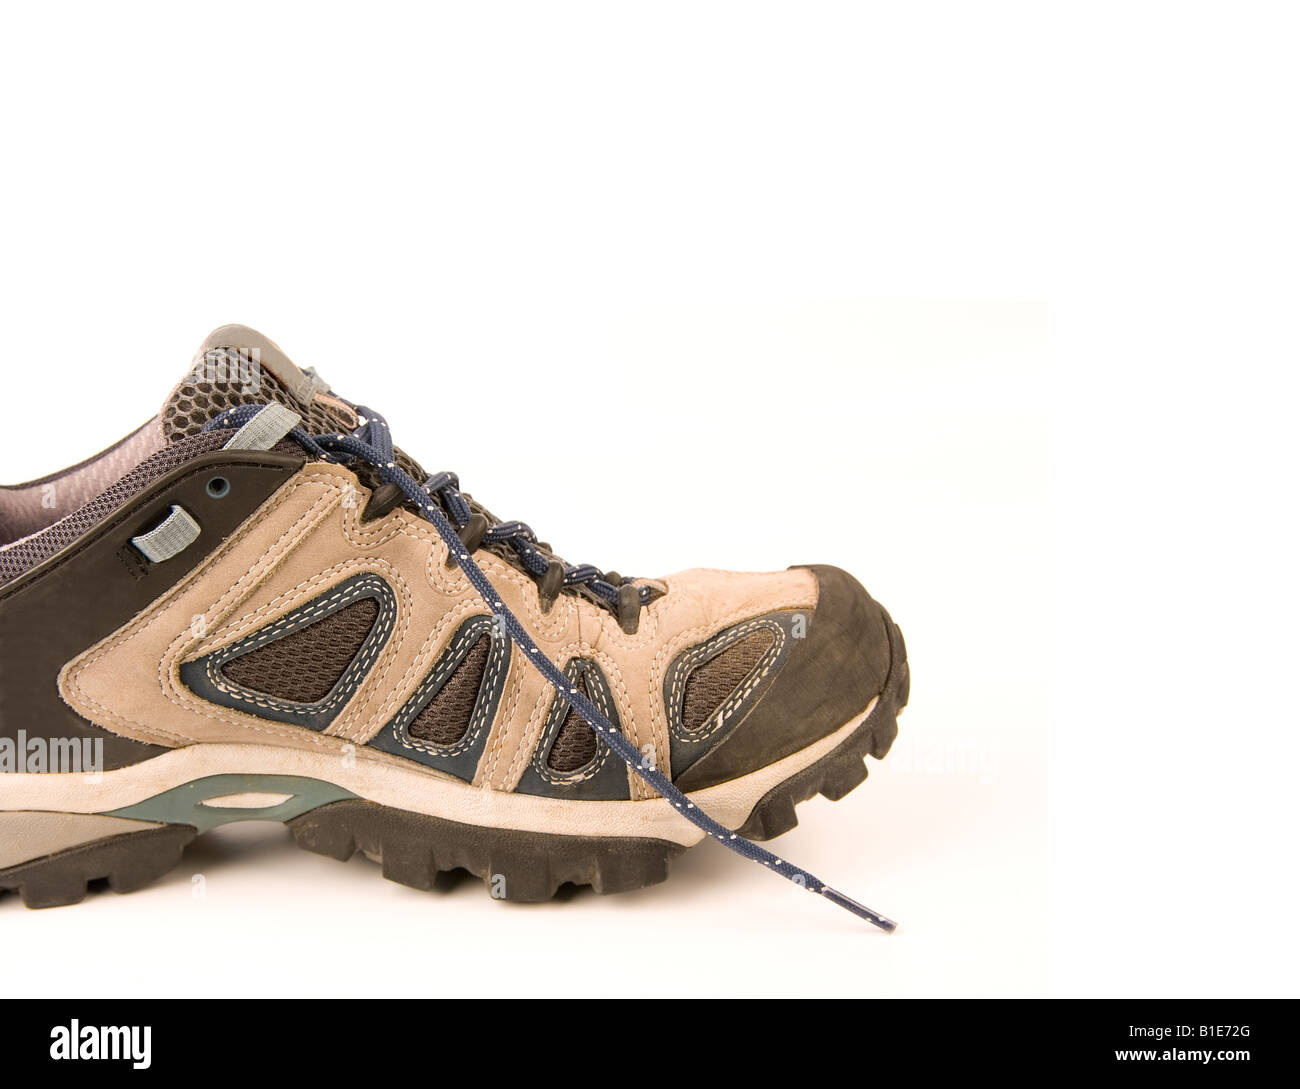 Clothes Hiking Boots Or Shoes Isolated On A Withe Background Made ...